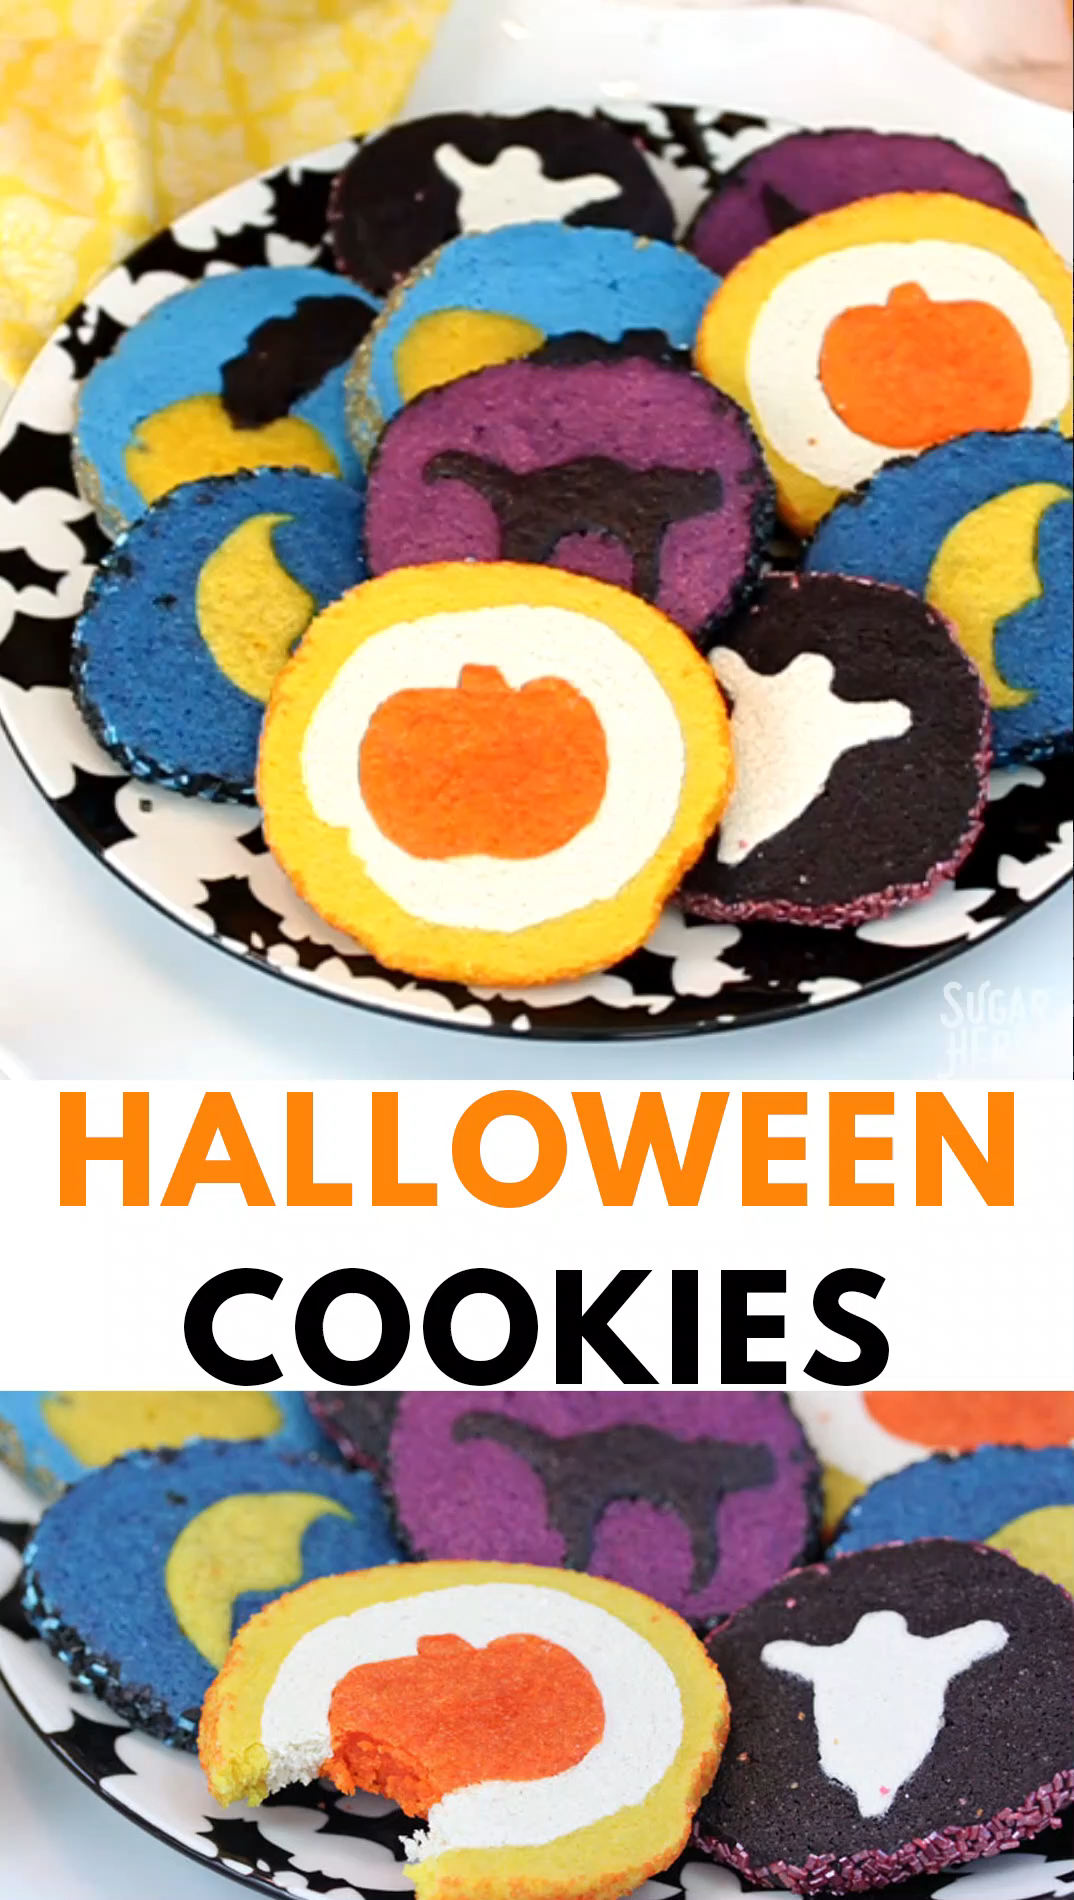 Slice and Bake Halloween Cookies Video  #fallpartyfood